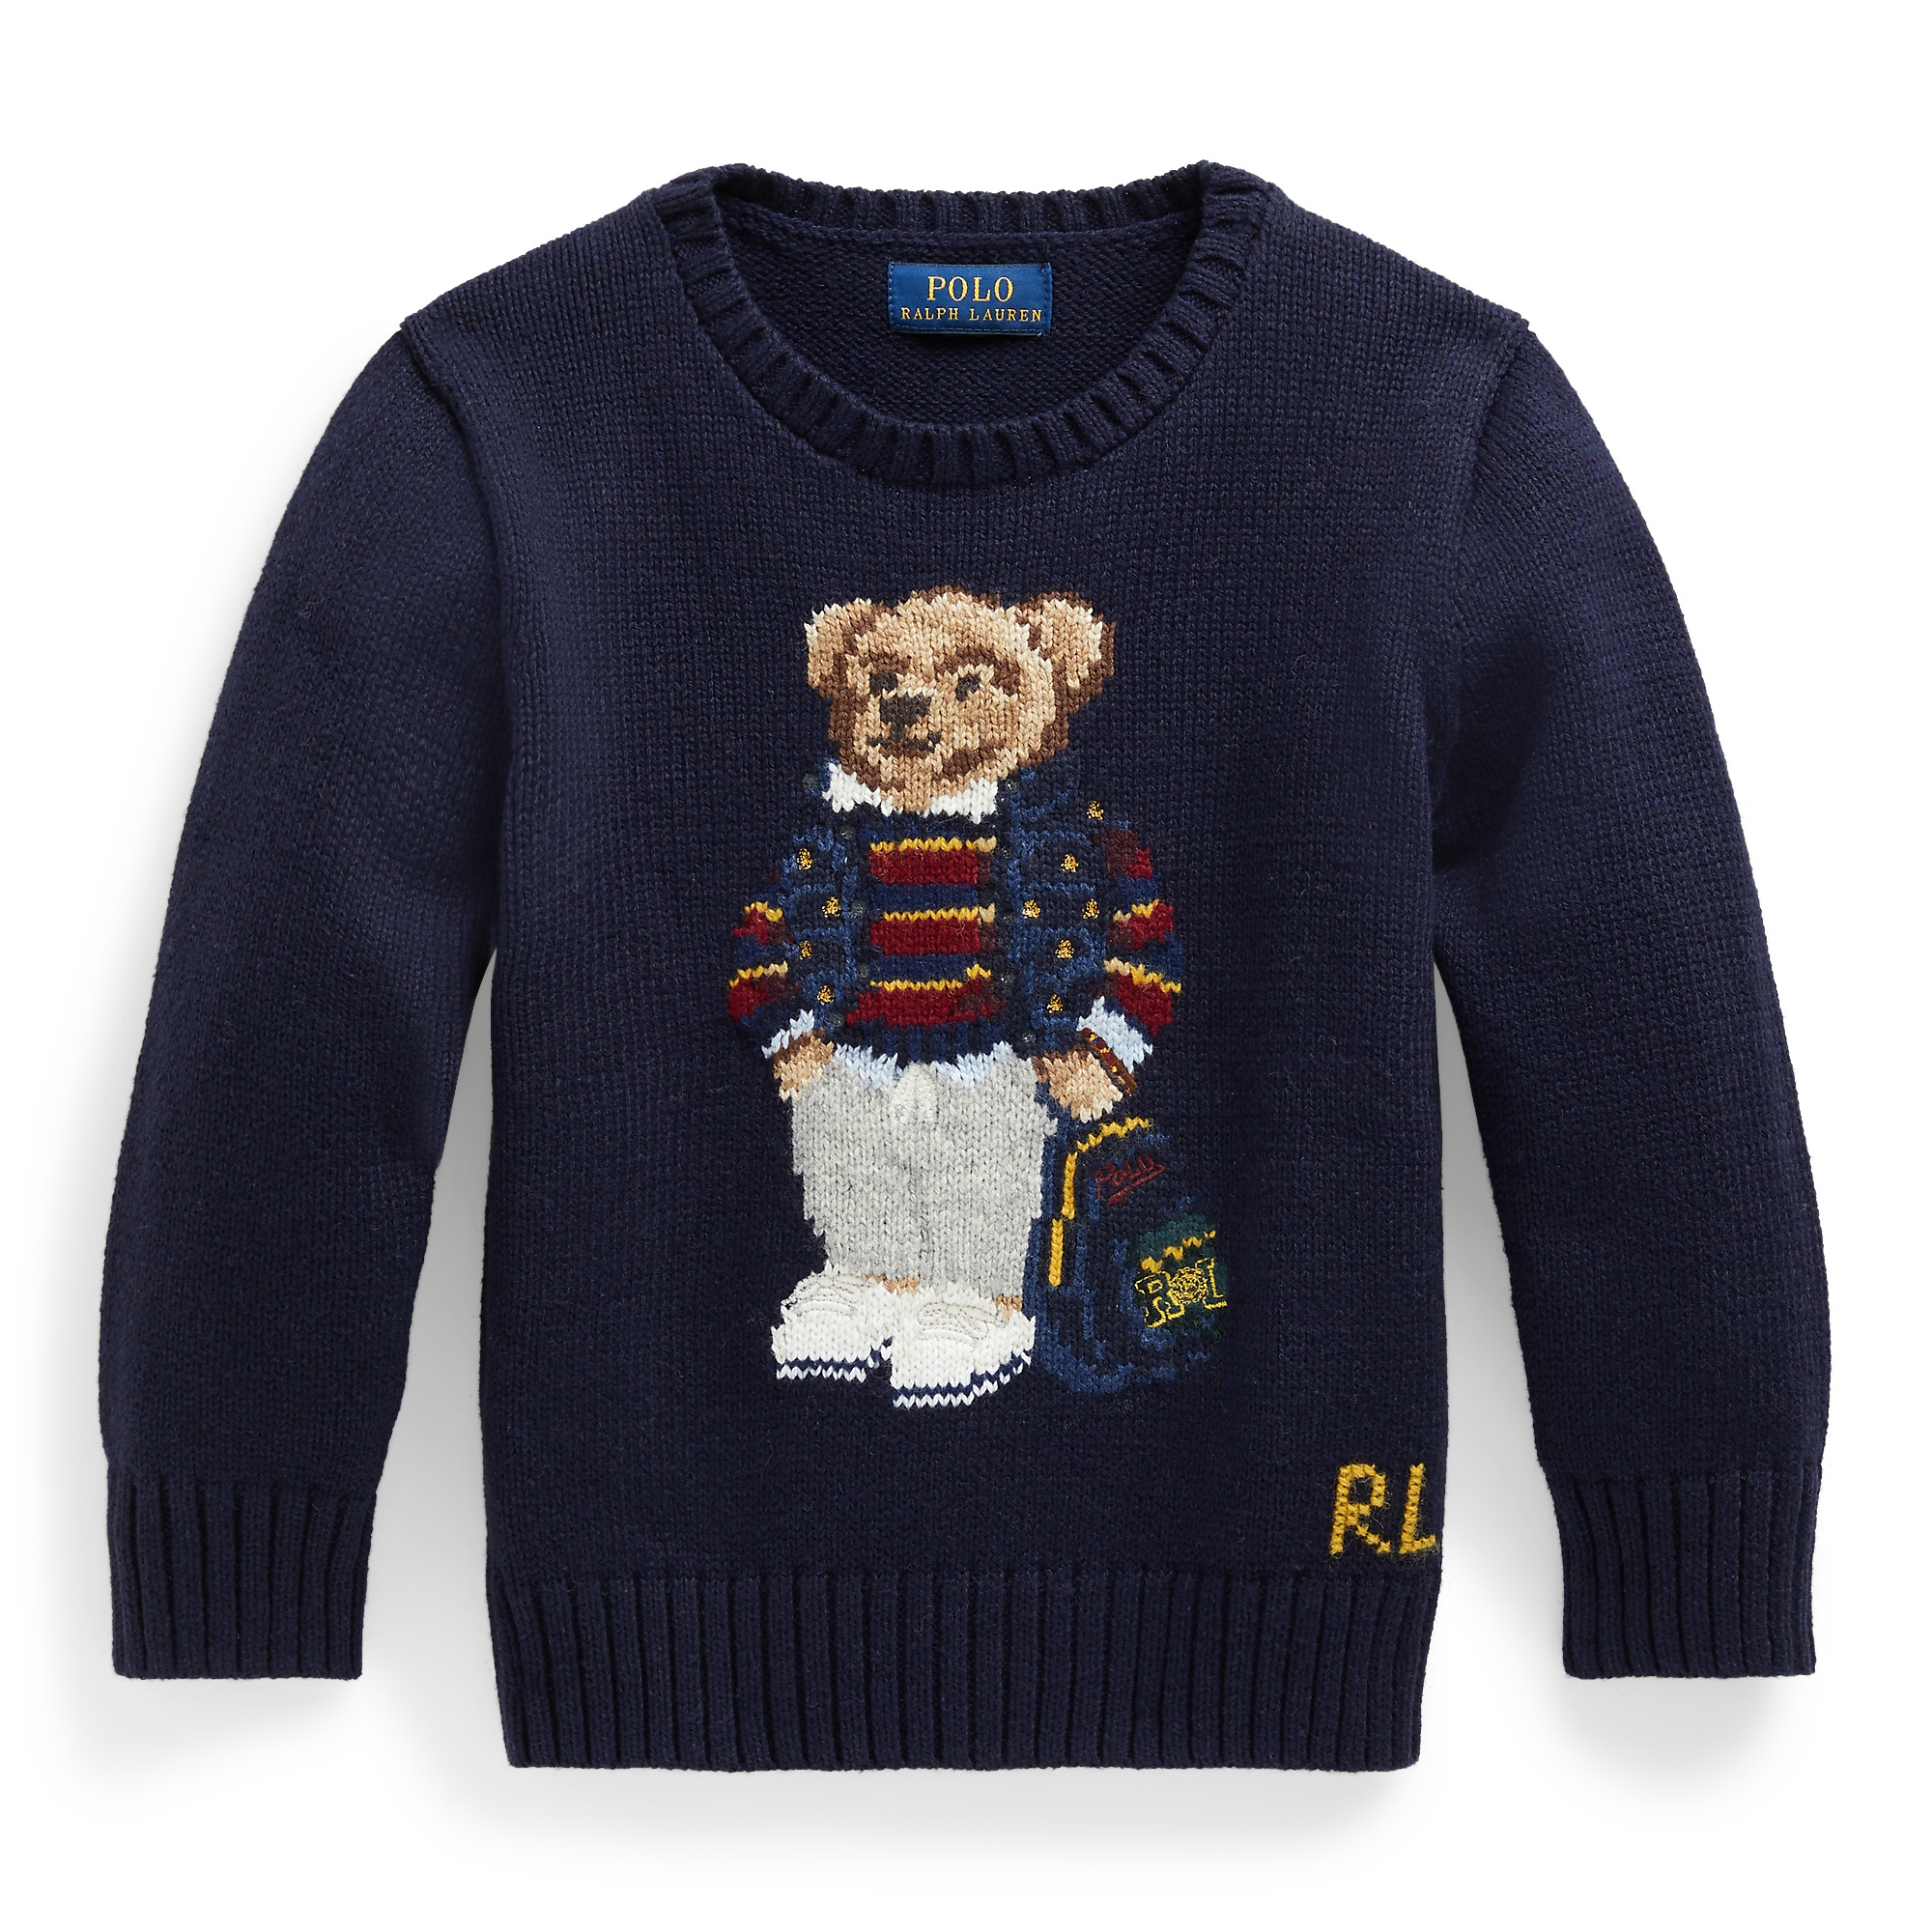 Ralph Lauren Polo Bear Cotton-Blend Sweater